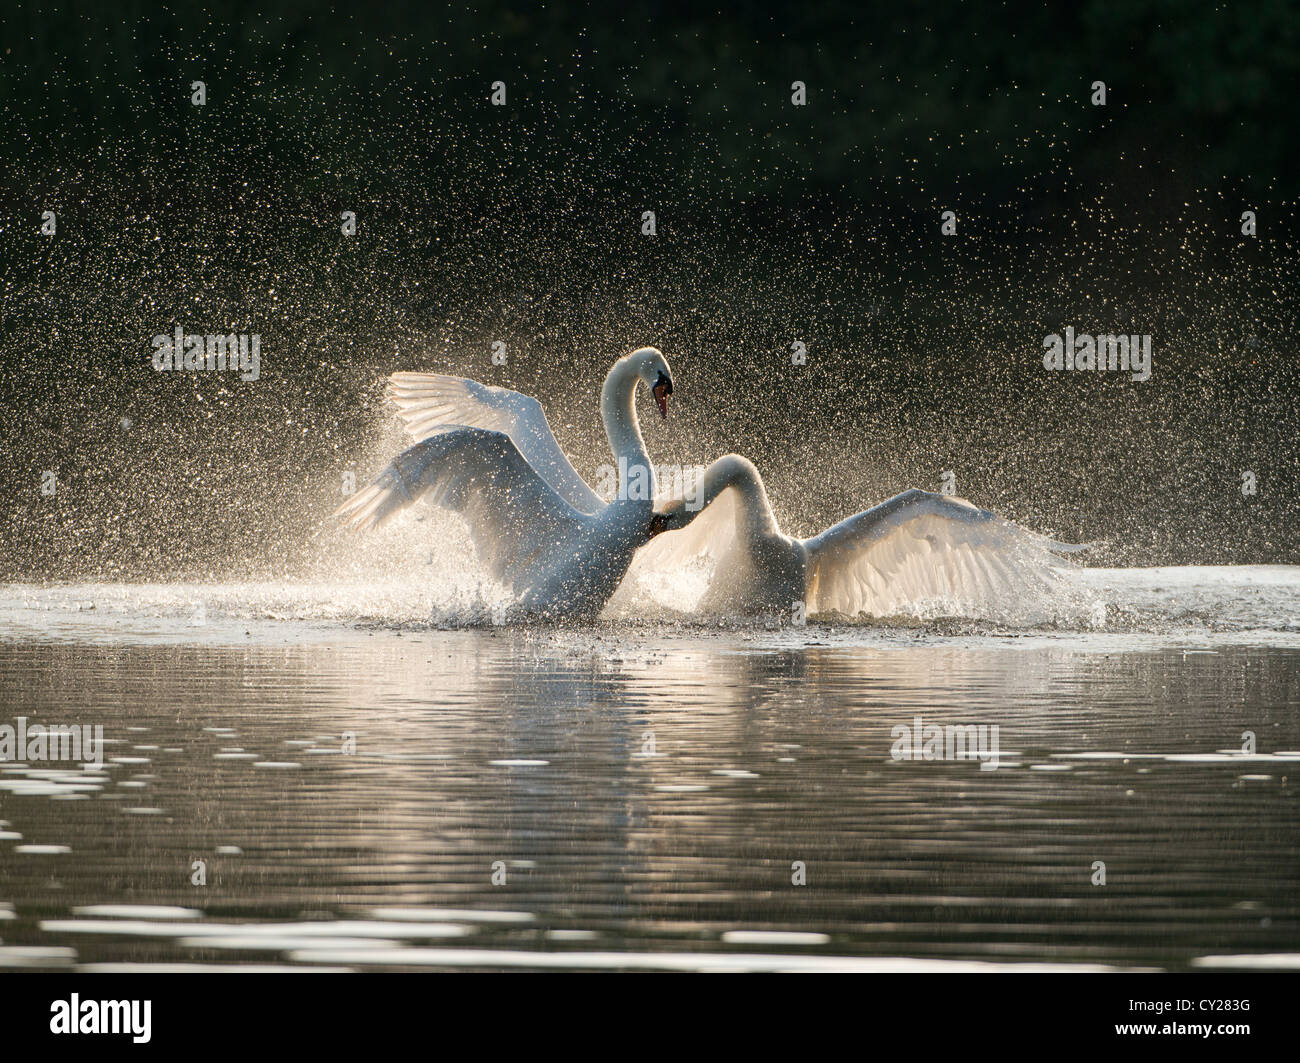 Backlit image of two beautiful swans fighting on a lake - Stock Image